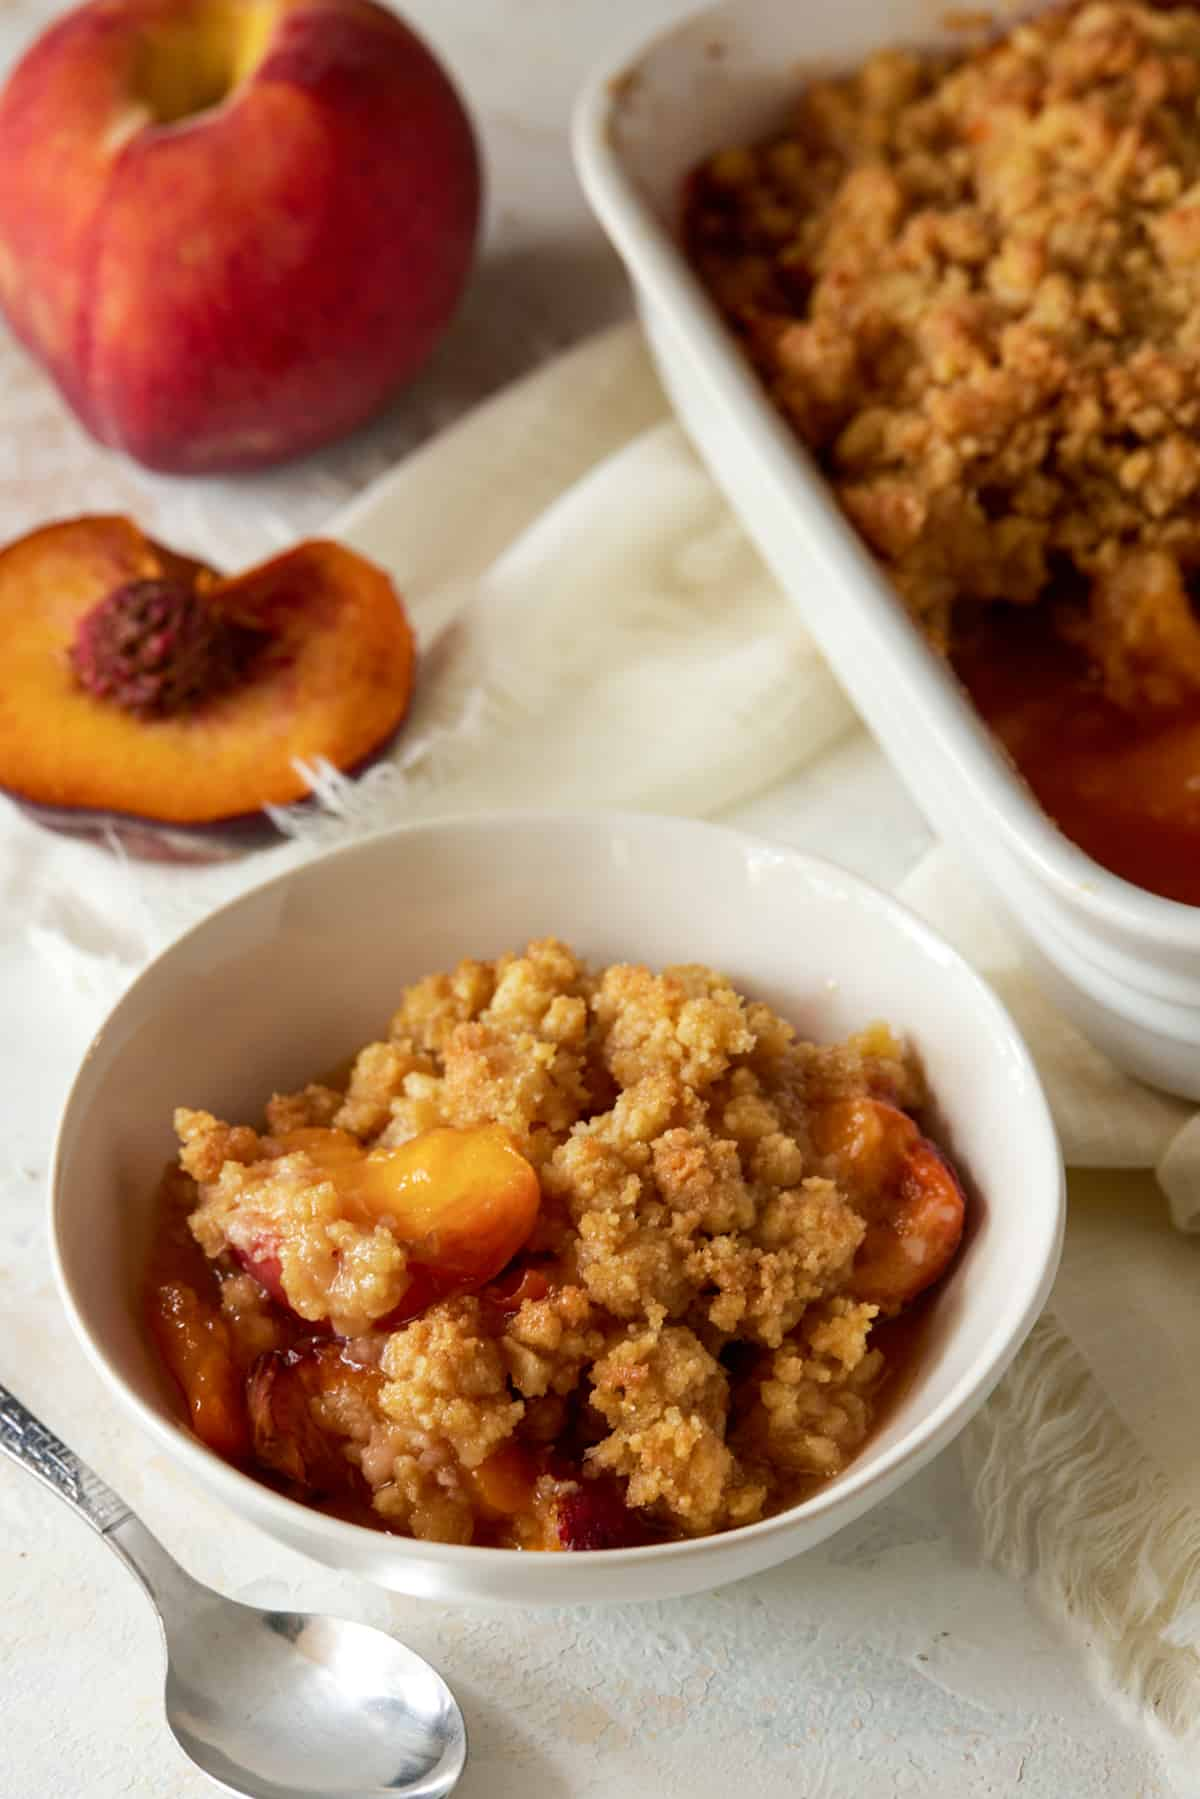 Bowl of peach crumble with baking dish.